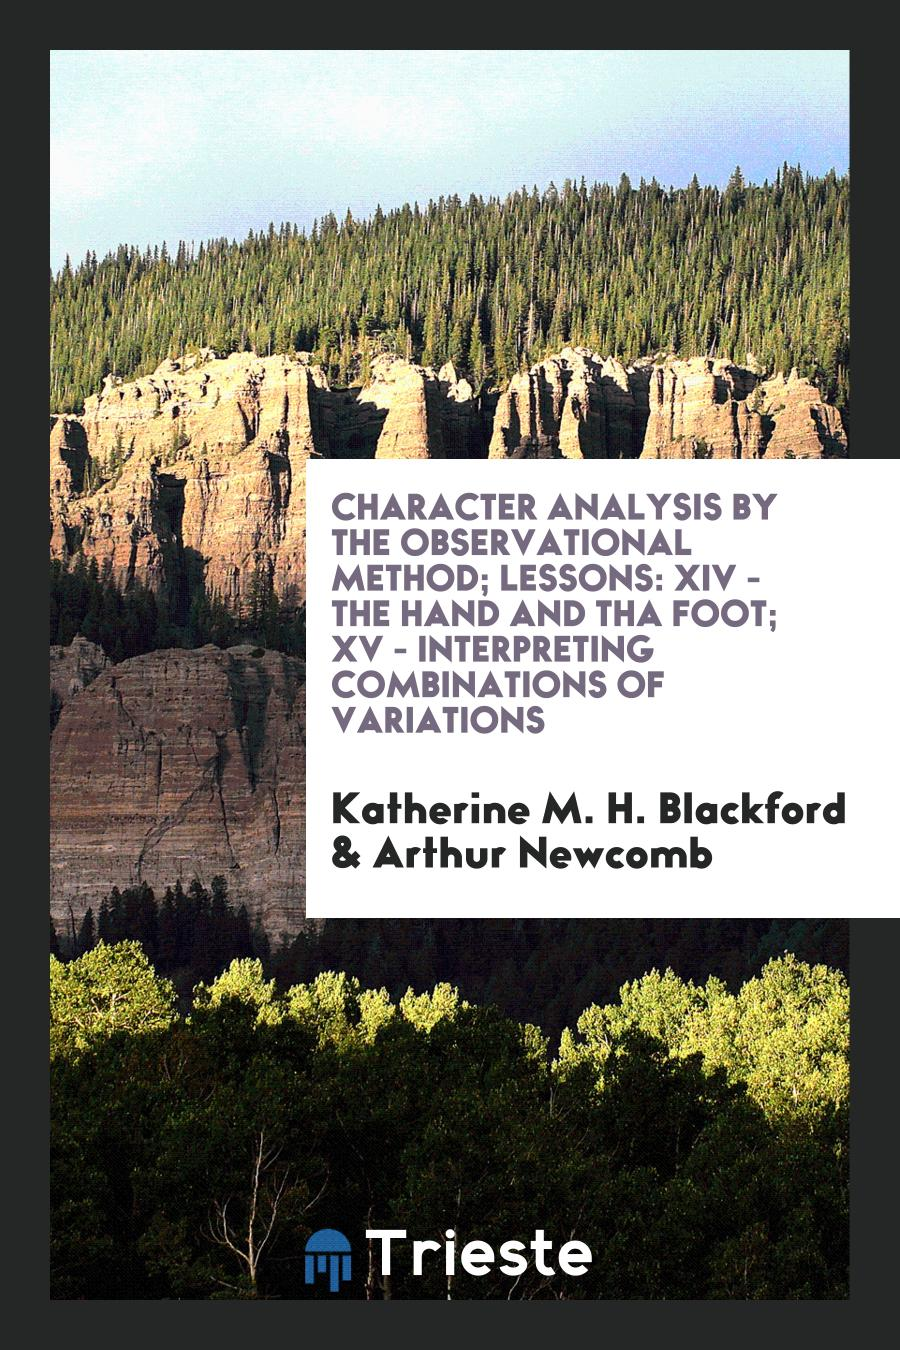 Character Analysis by the Observational Method; Lessons: XIV - The Hand and tha Foot; XV - Interpreting Combinations of Variations